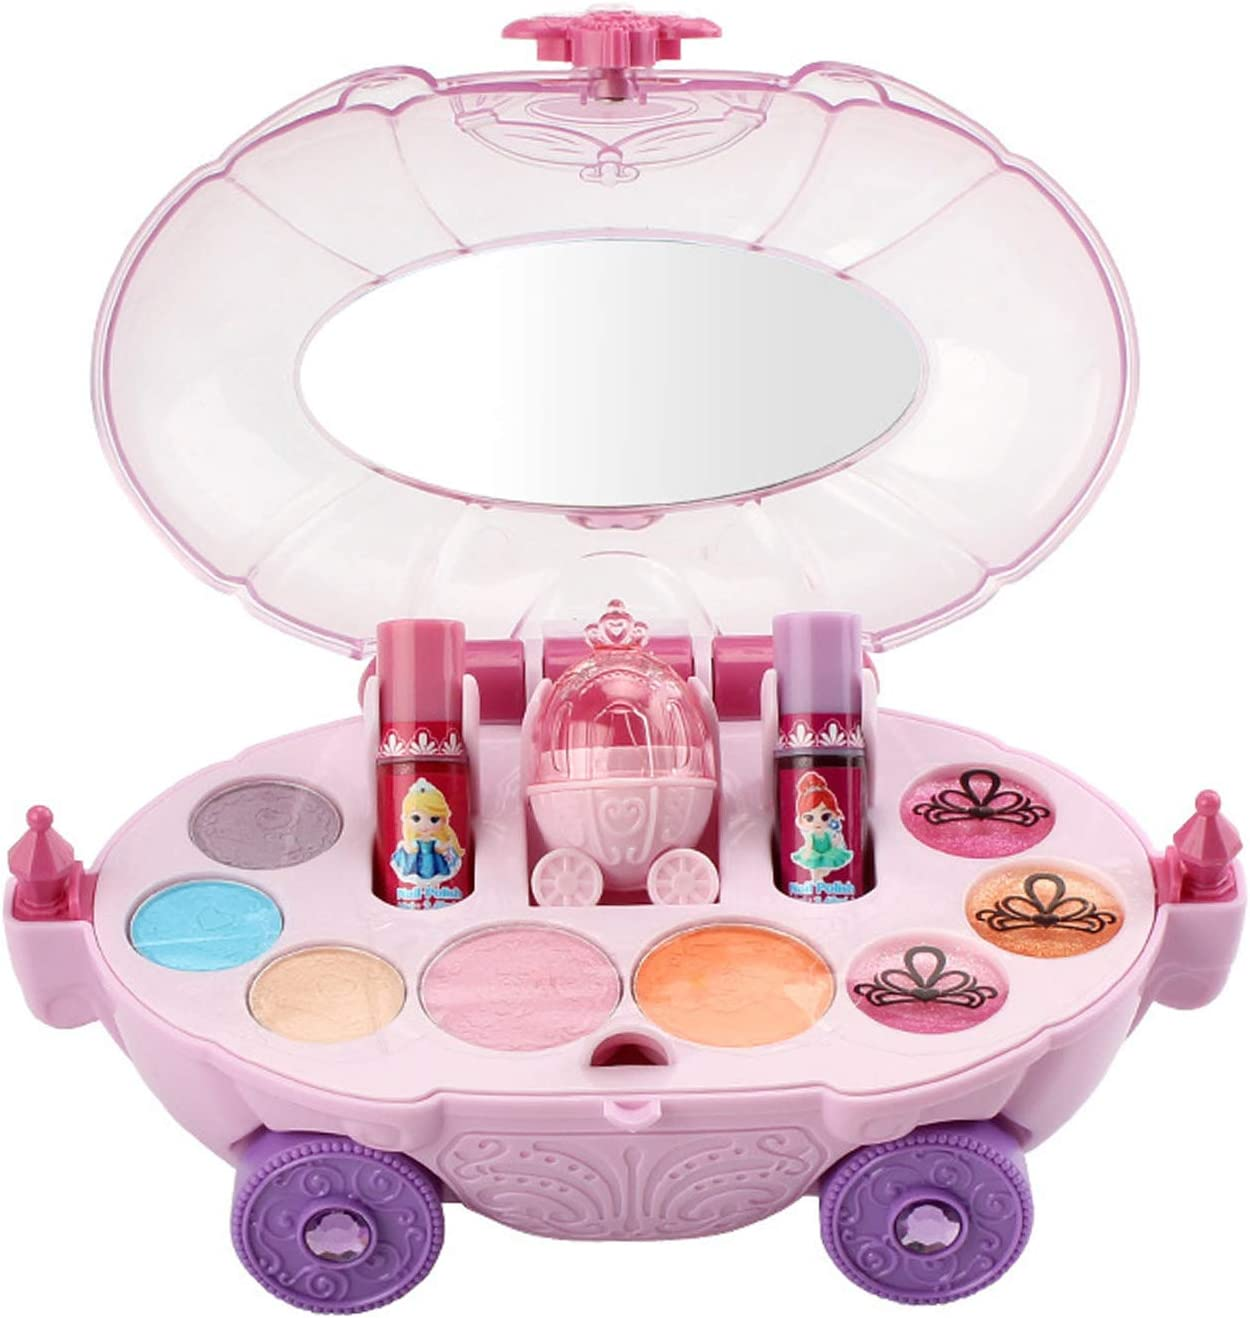 Oakland Mall It is very popular ONWRACE Makeup Kit for Girls Car Novelty Washable with M